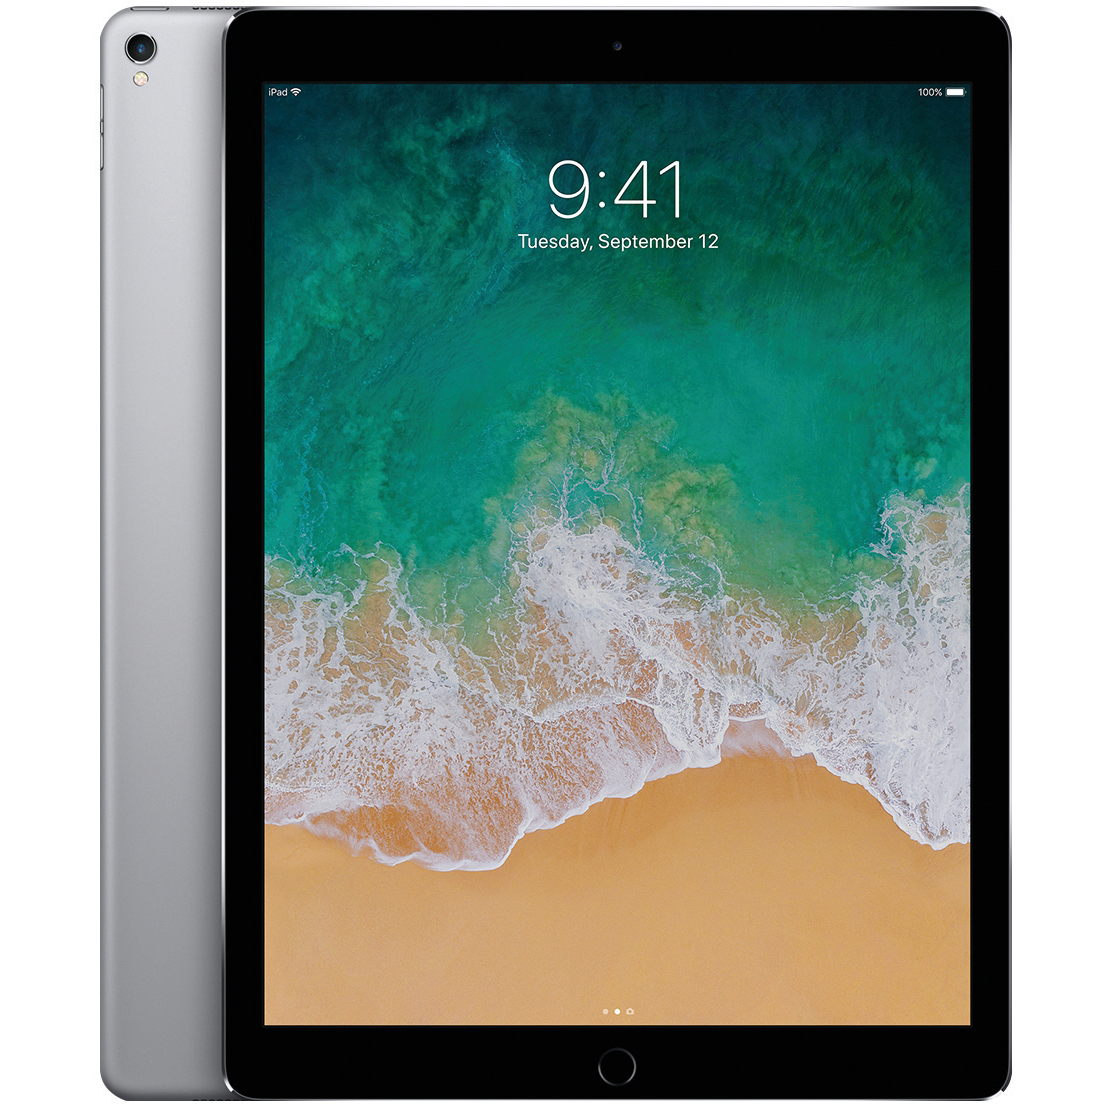 Apple iPad Pro A10X Processor Wi-Fi 64GB 10.5in Retina Display ID Finger Sensor Space Grey Ref MQDT2B/A